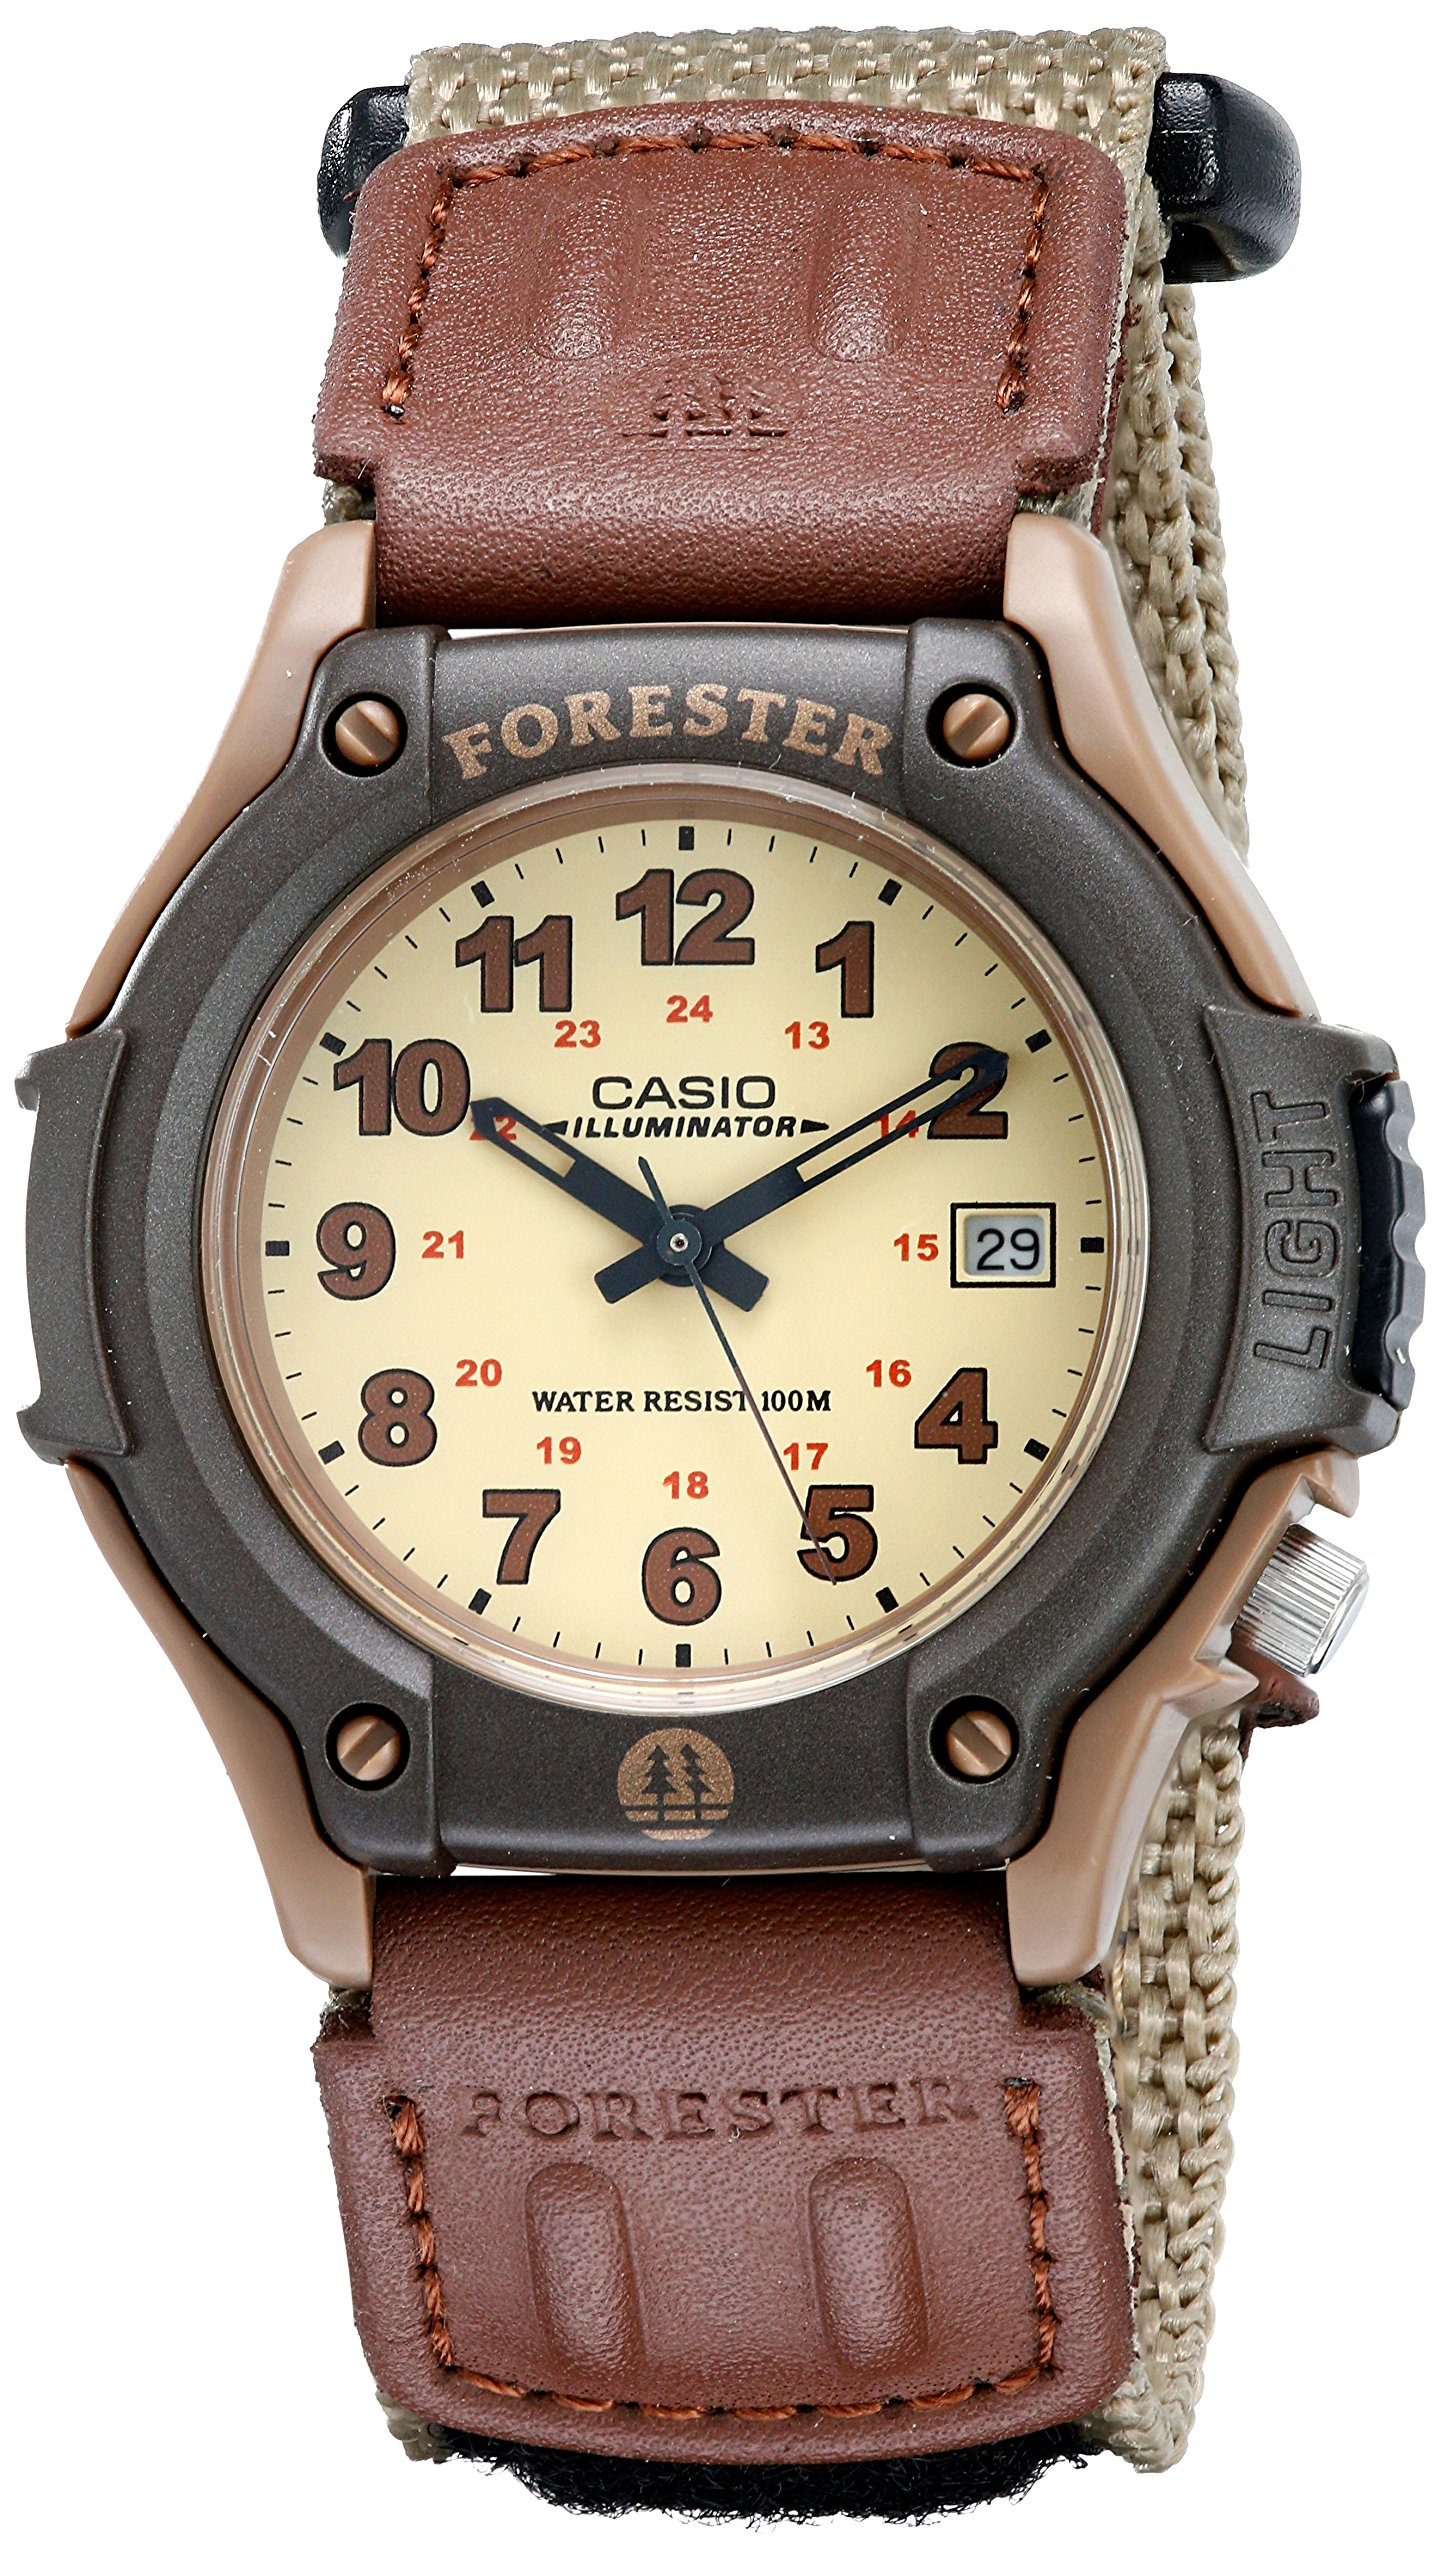 Casio Men's Sport Watch Quartz Nylon Strap, Beige, 20 (Model: FT500WC-5BVCF)